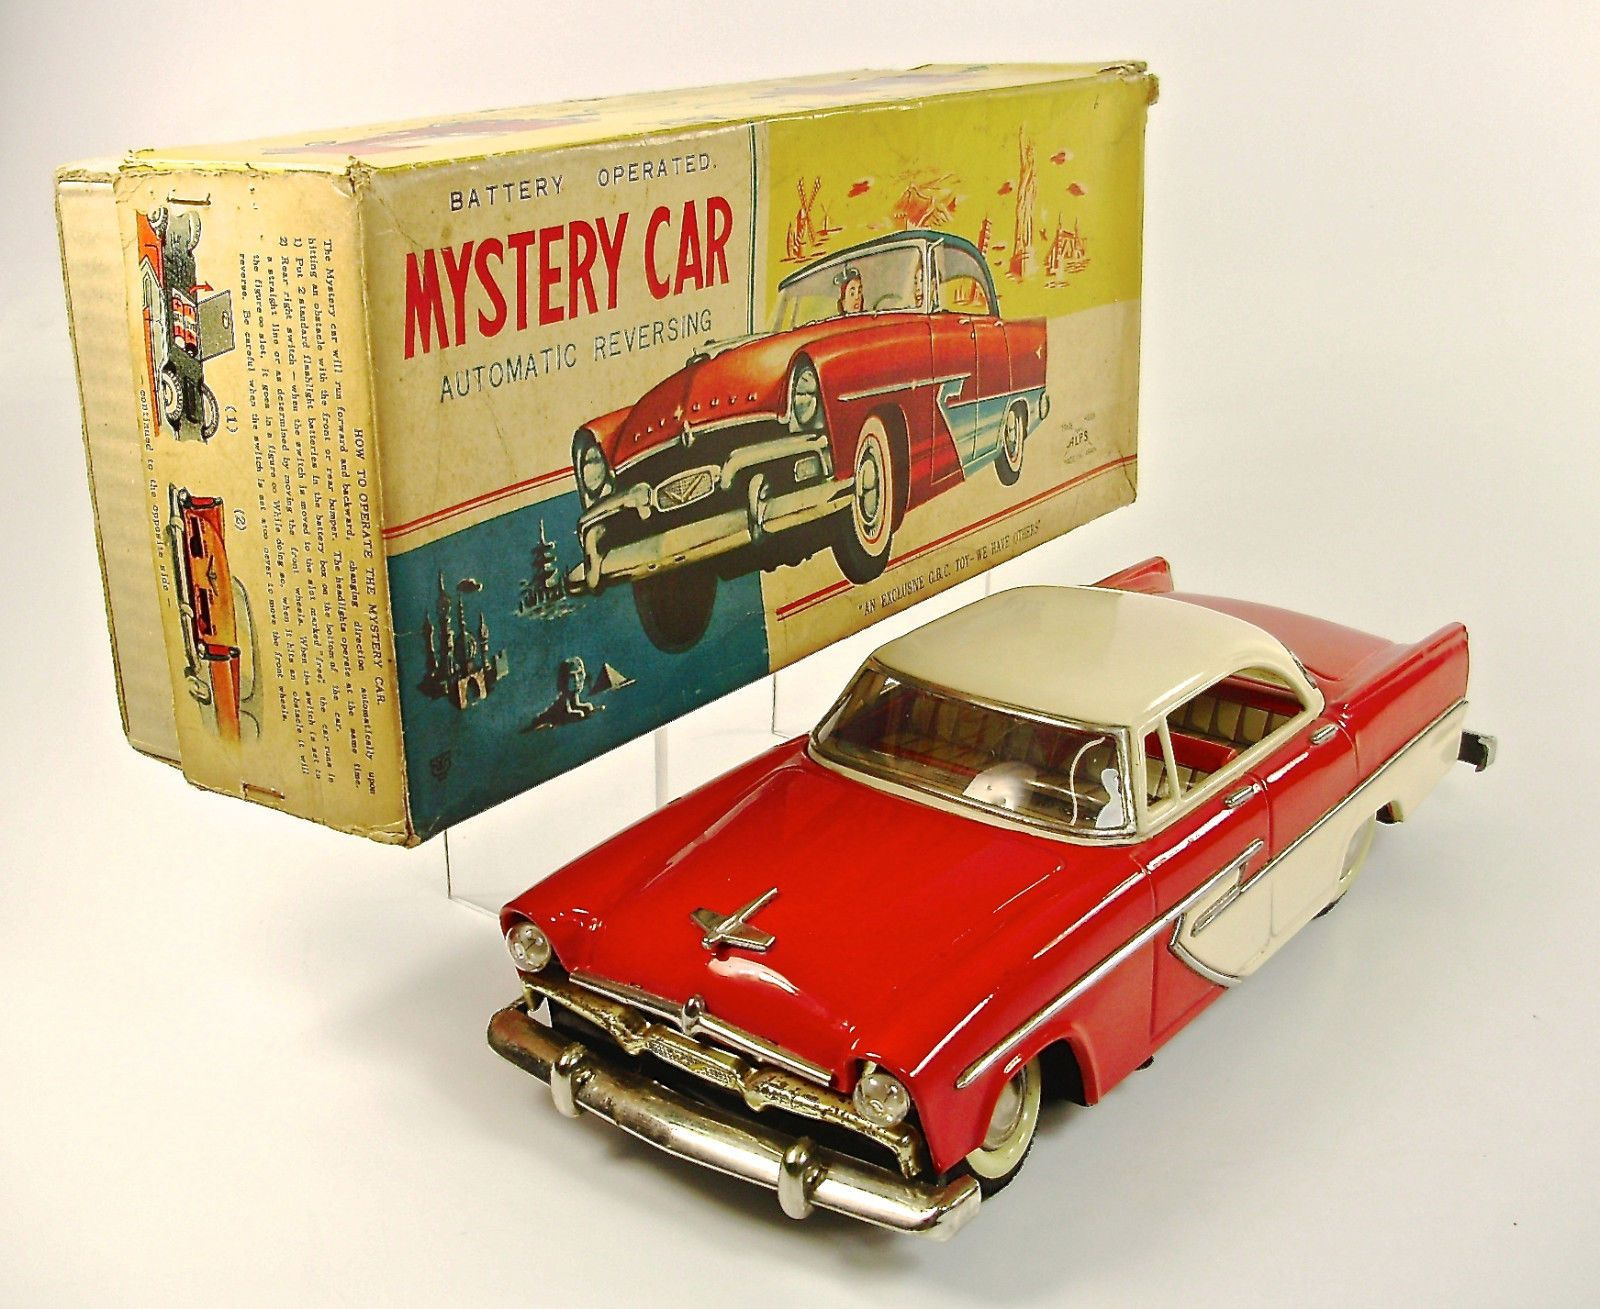 toy cars Mobile Antique Price Guide | Japan Tin Toy | Pinterest ...